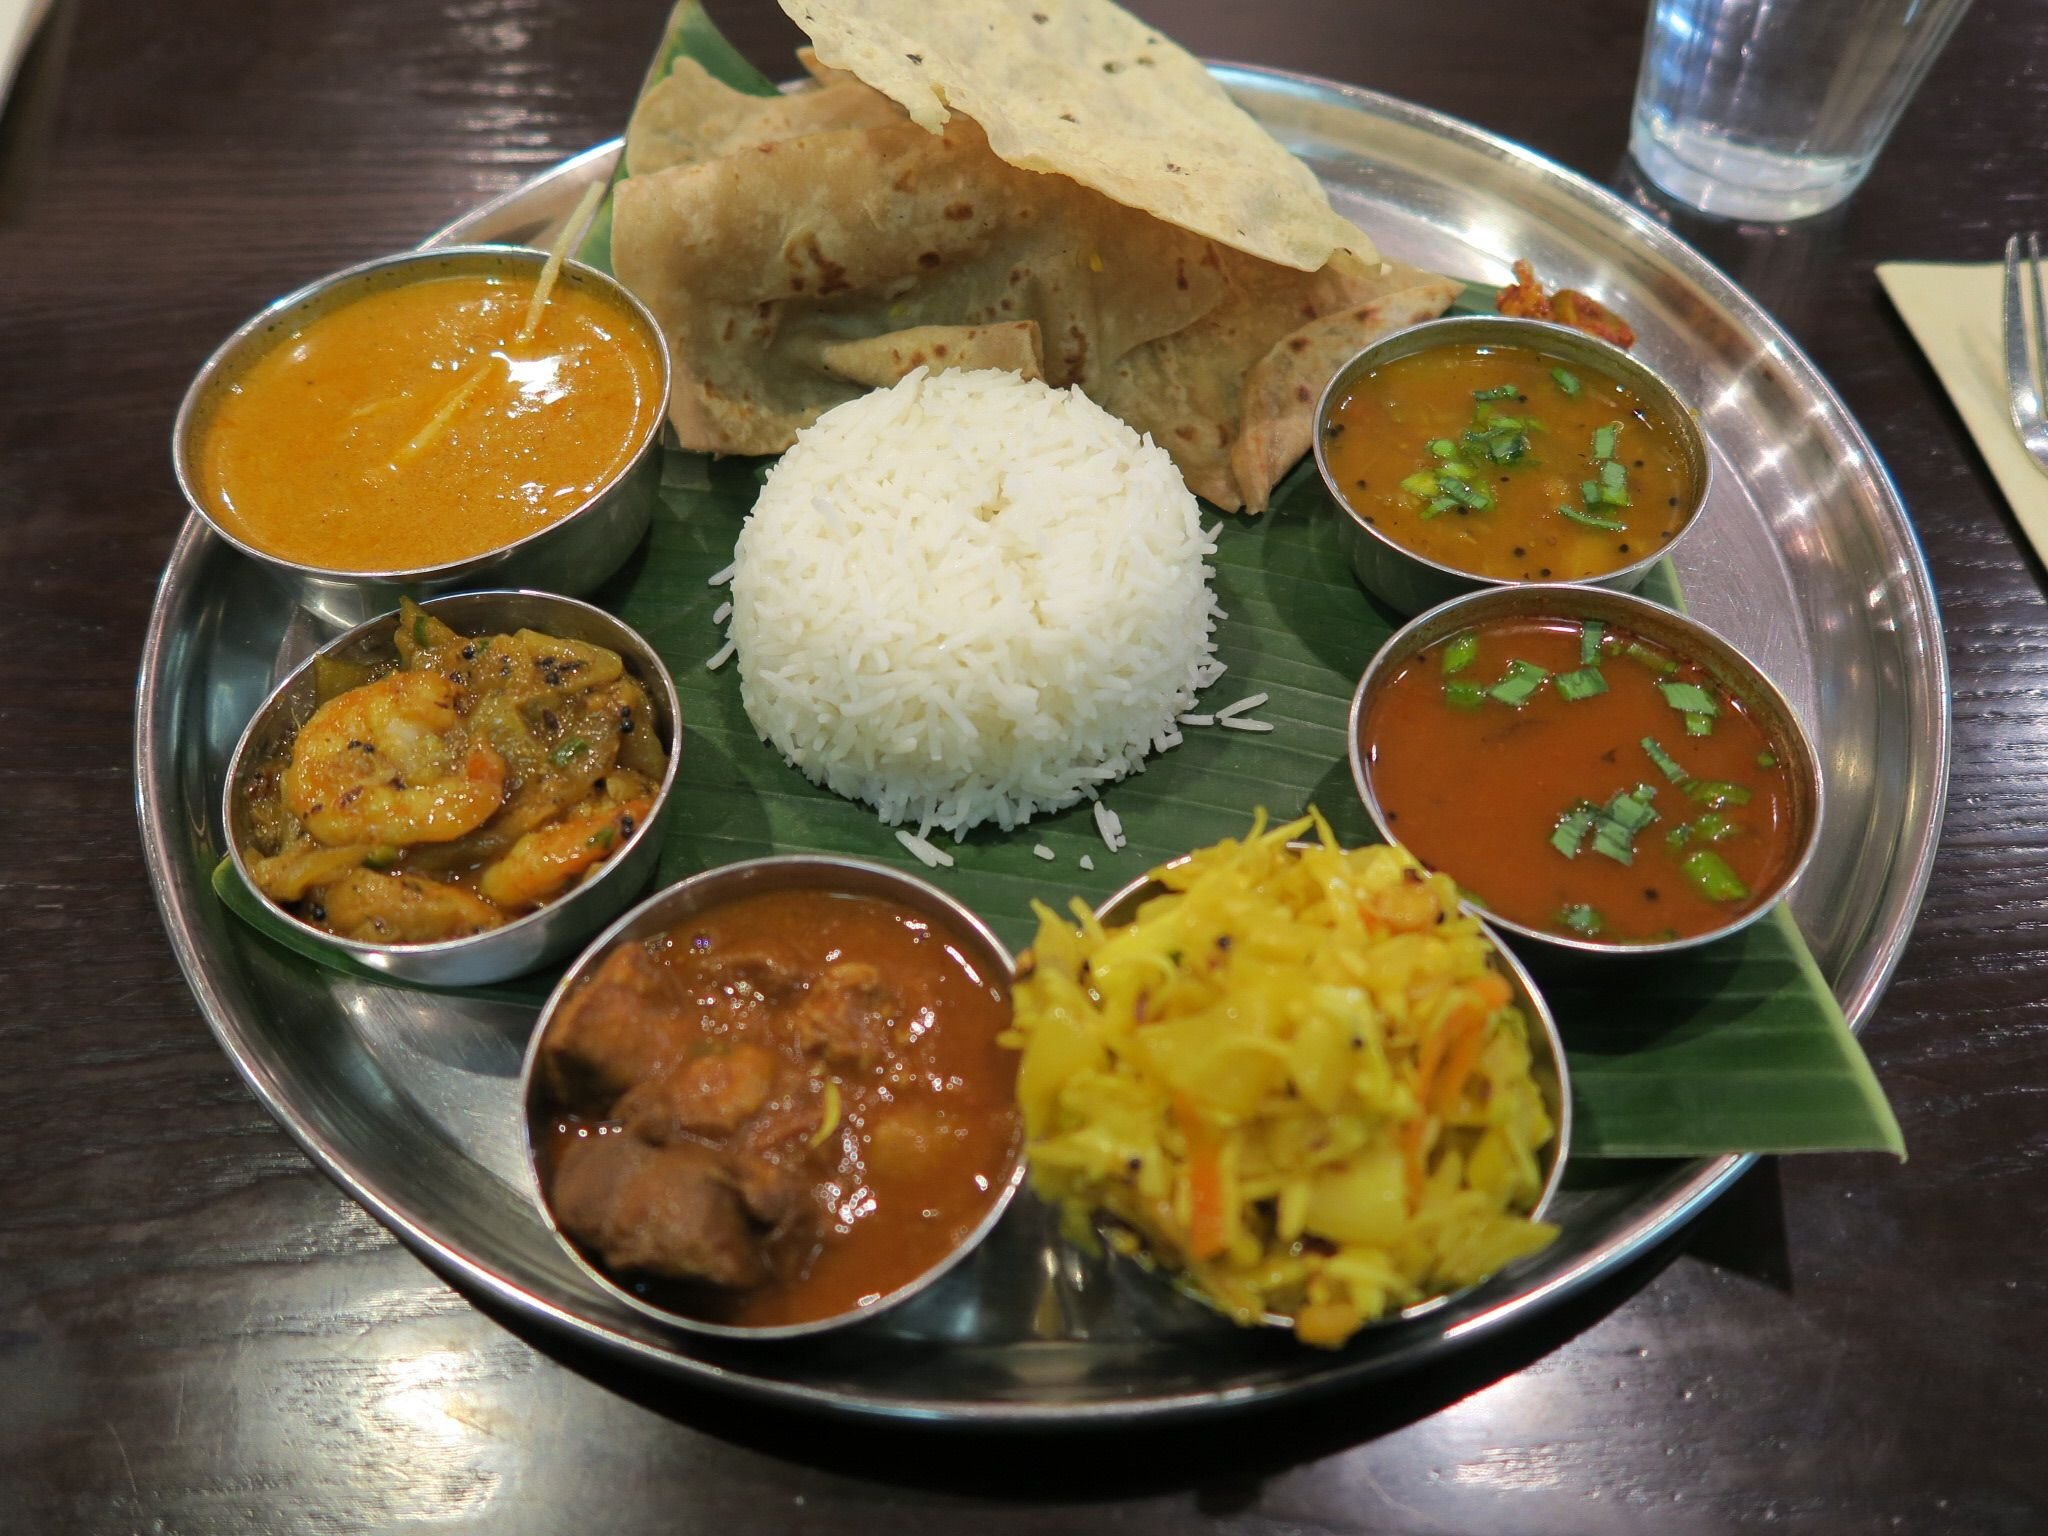 if you use indian curry well keep calories down 37061306.jpg?resize=1200,630 - インドカレーは上手く利用すればカロリーを抑えダイエット食になるらしい